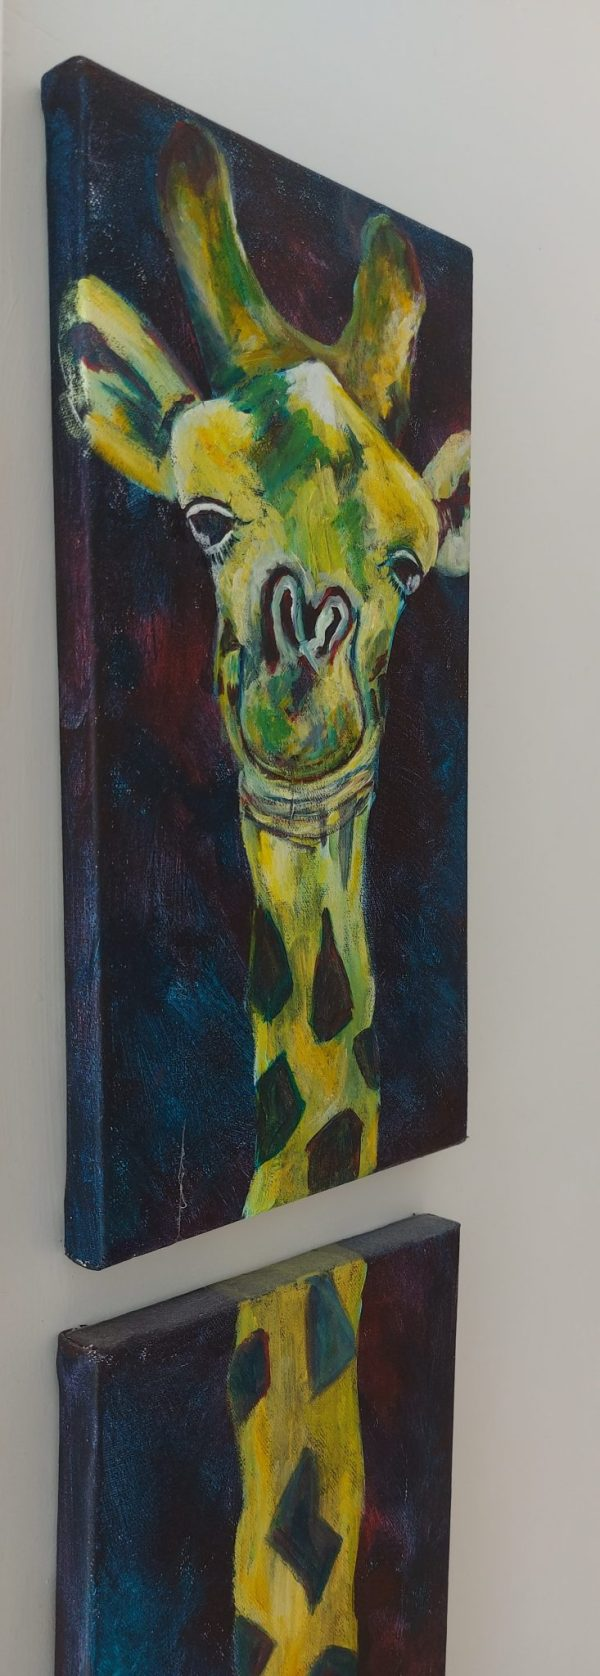 Cute giraffe painting in acrylic on two canvasses, with very long neck